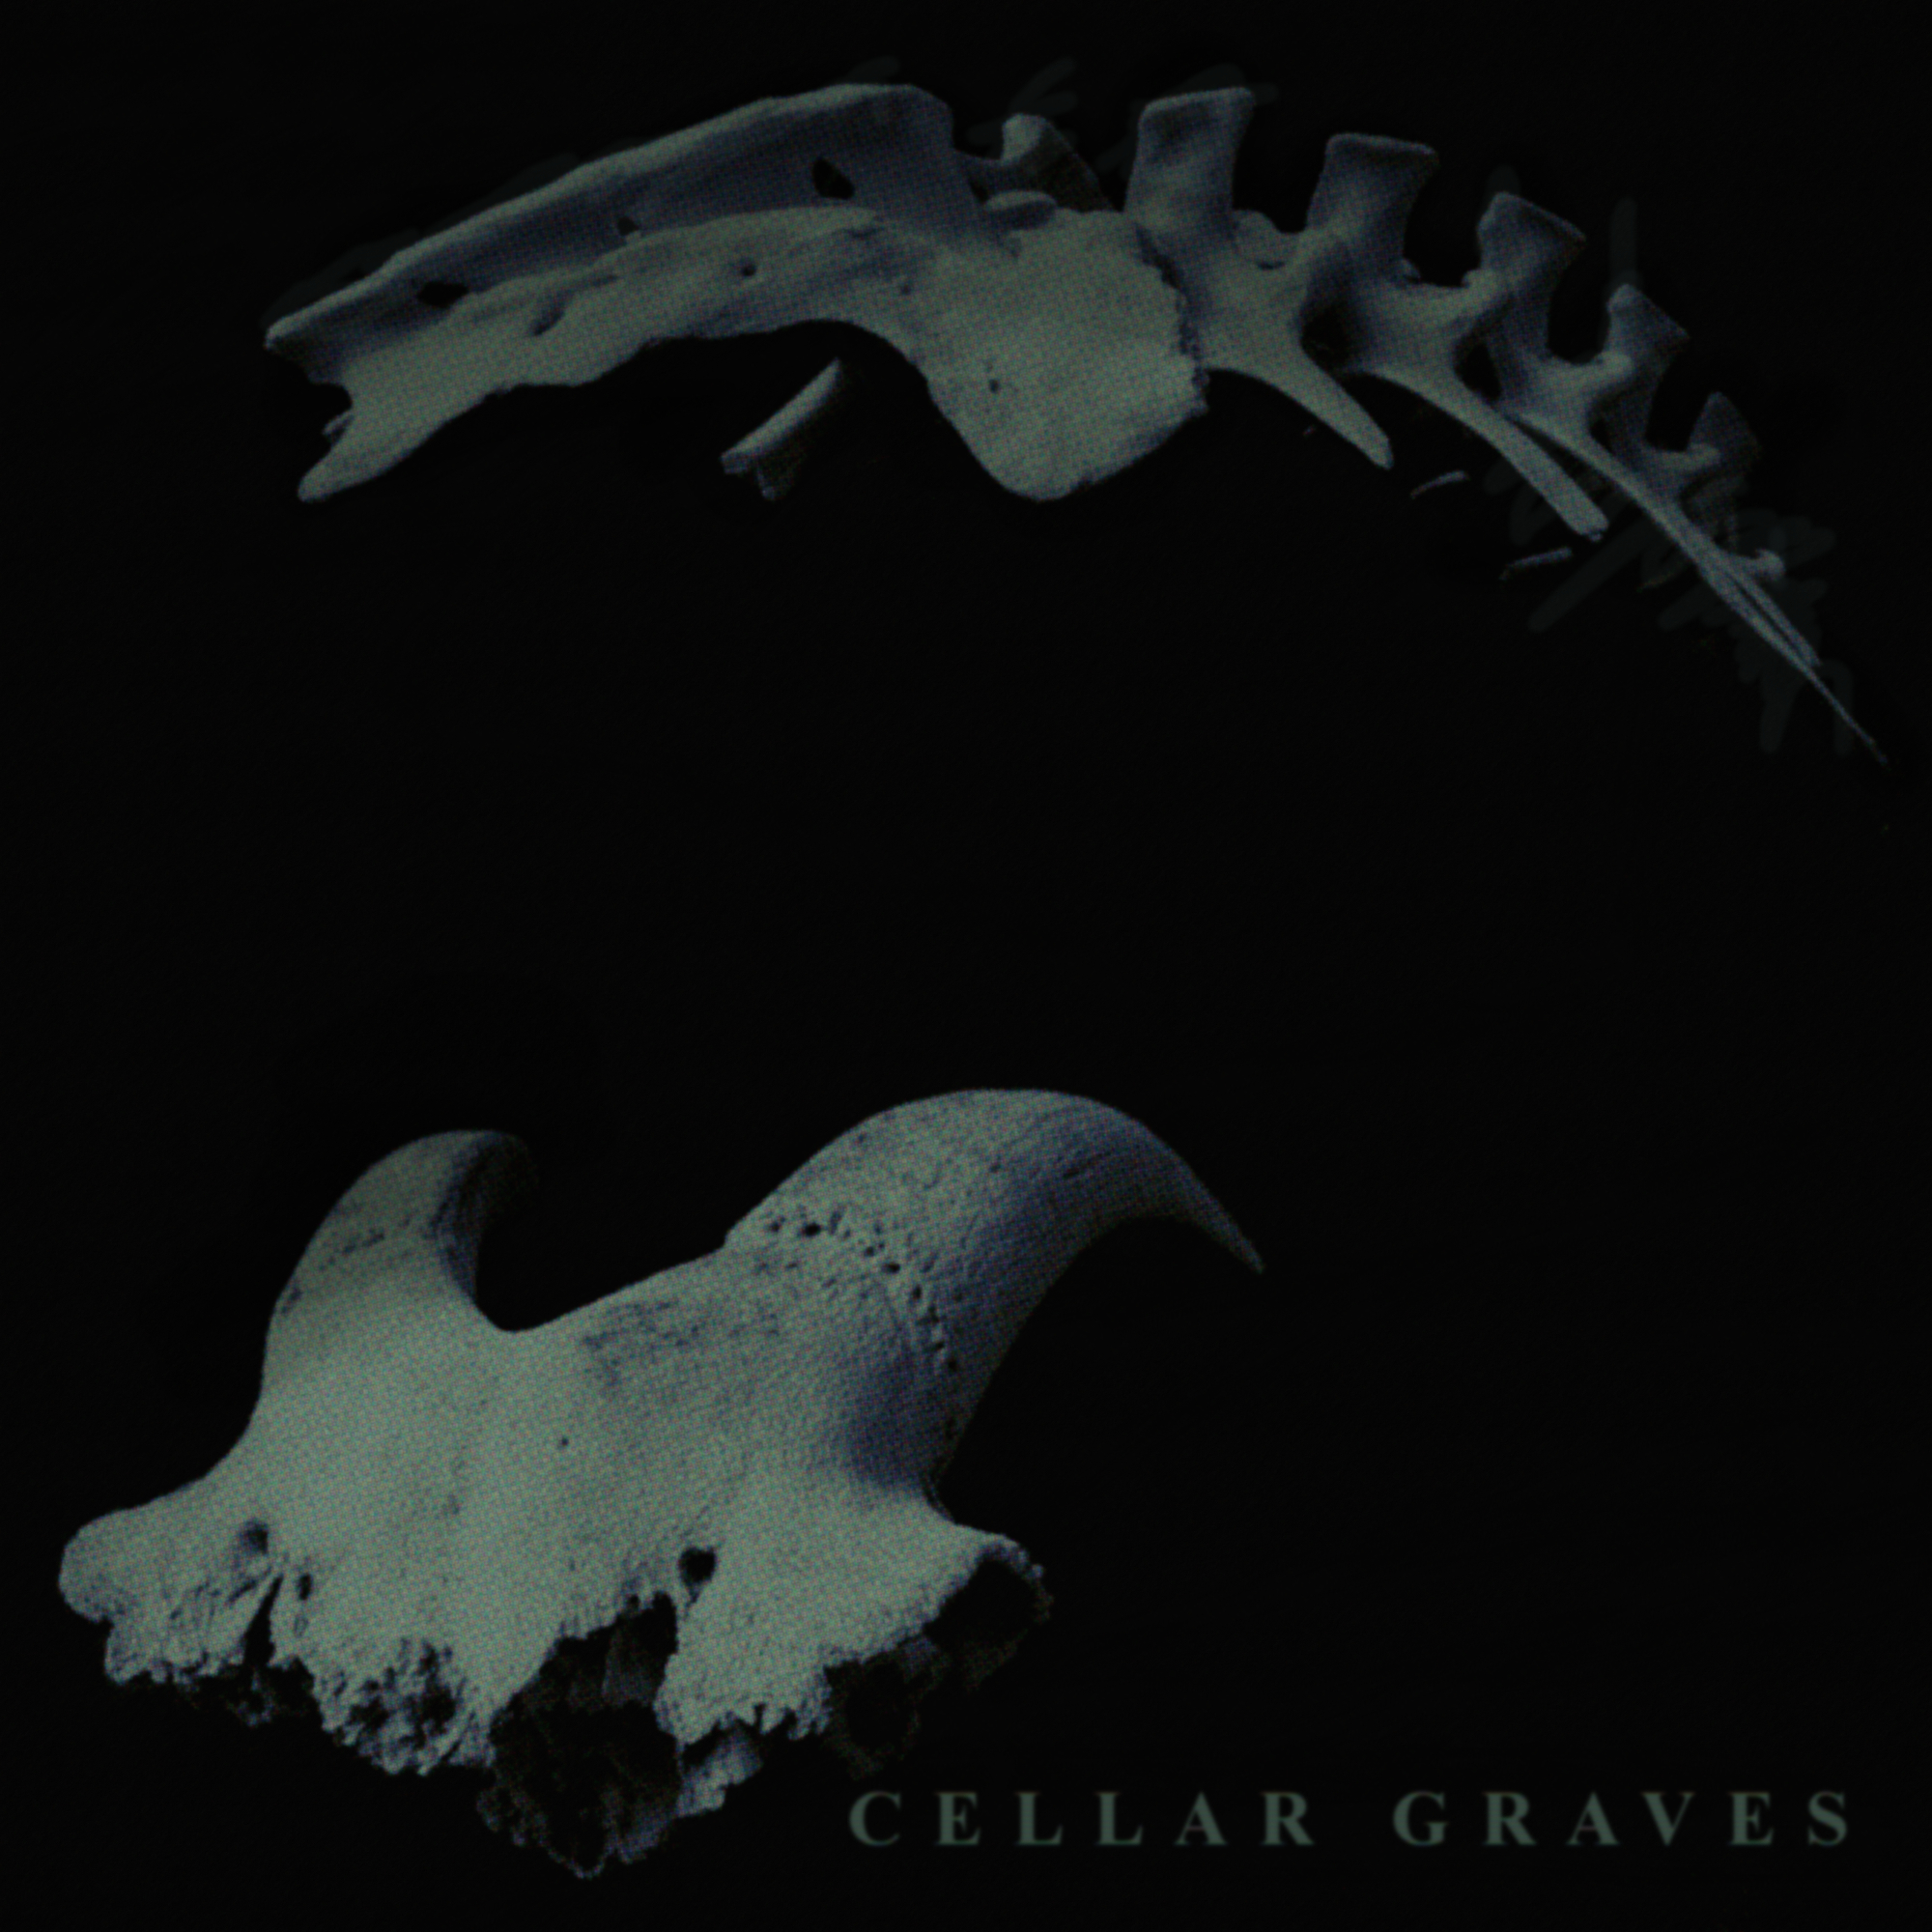 Observer: Cellar Graves & Razorback Hollow